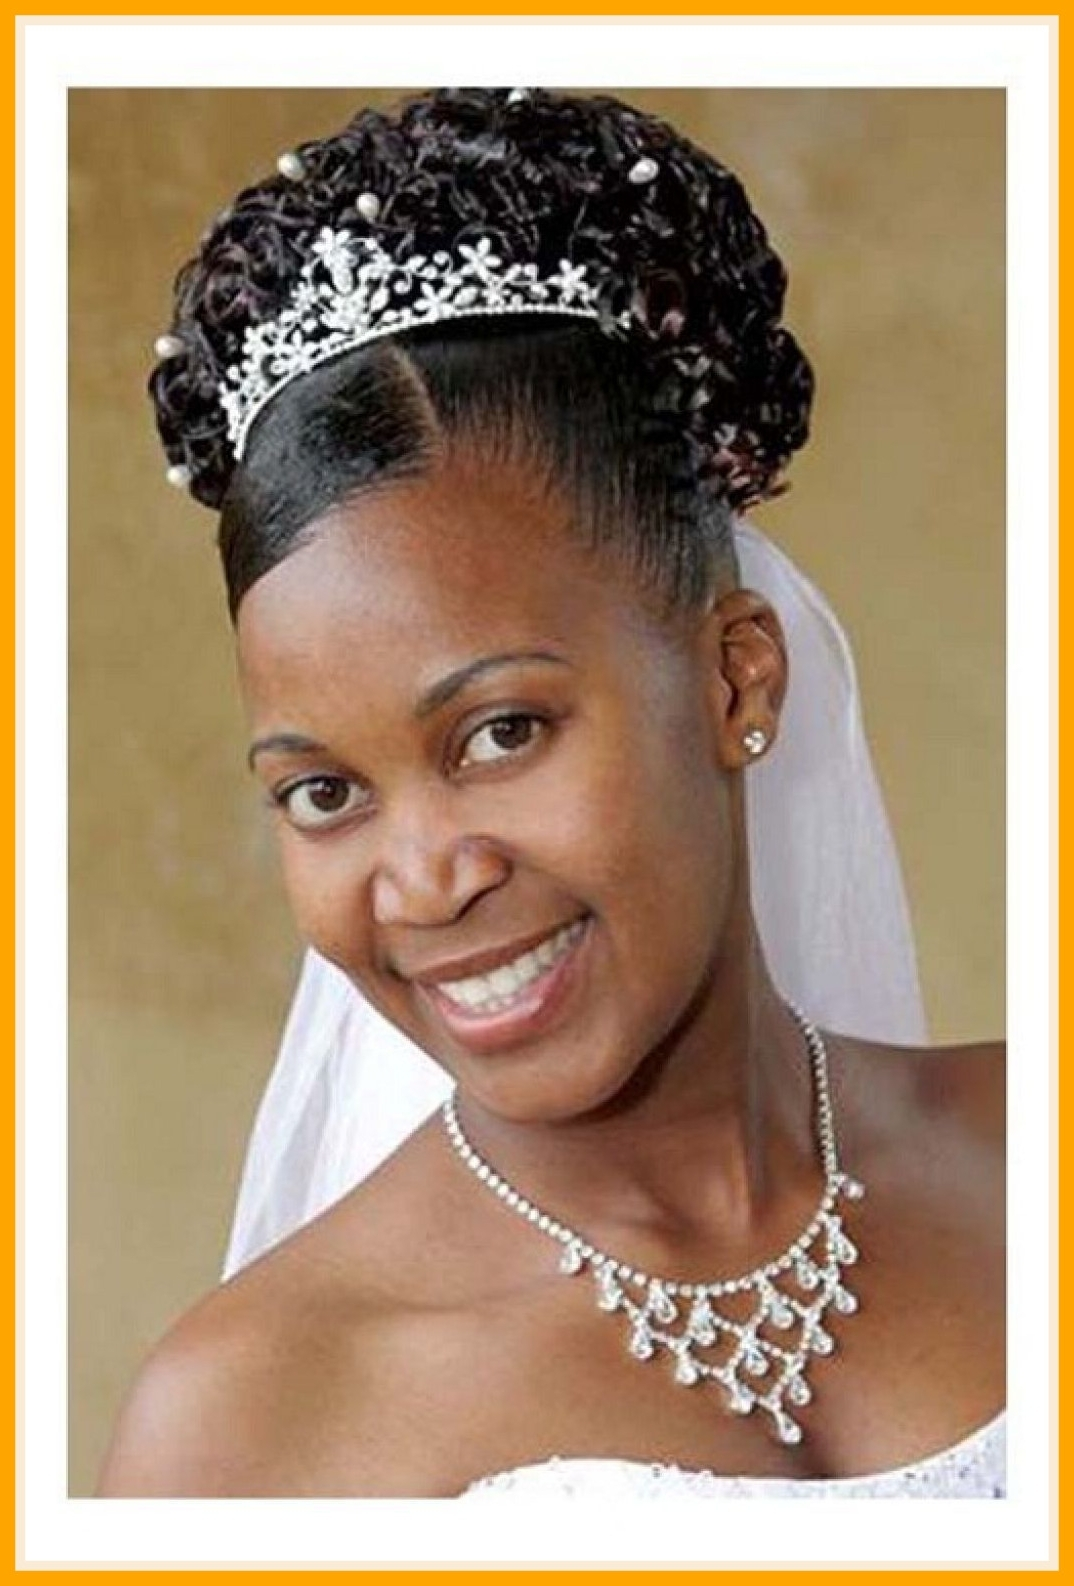 Incredible Natural Wedding Hair For Black Women With Braids Pic Of With Regard To Latest Nigerian Wedding Hairstyles For Bridesmaids (View 15 of 15)